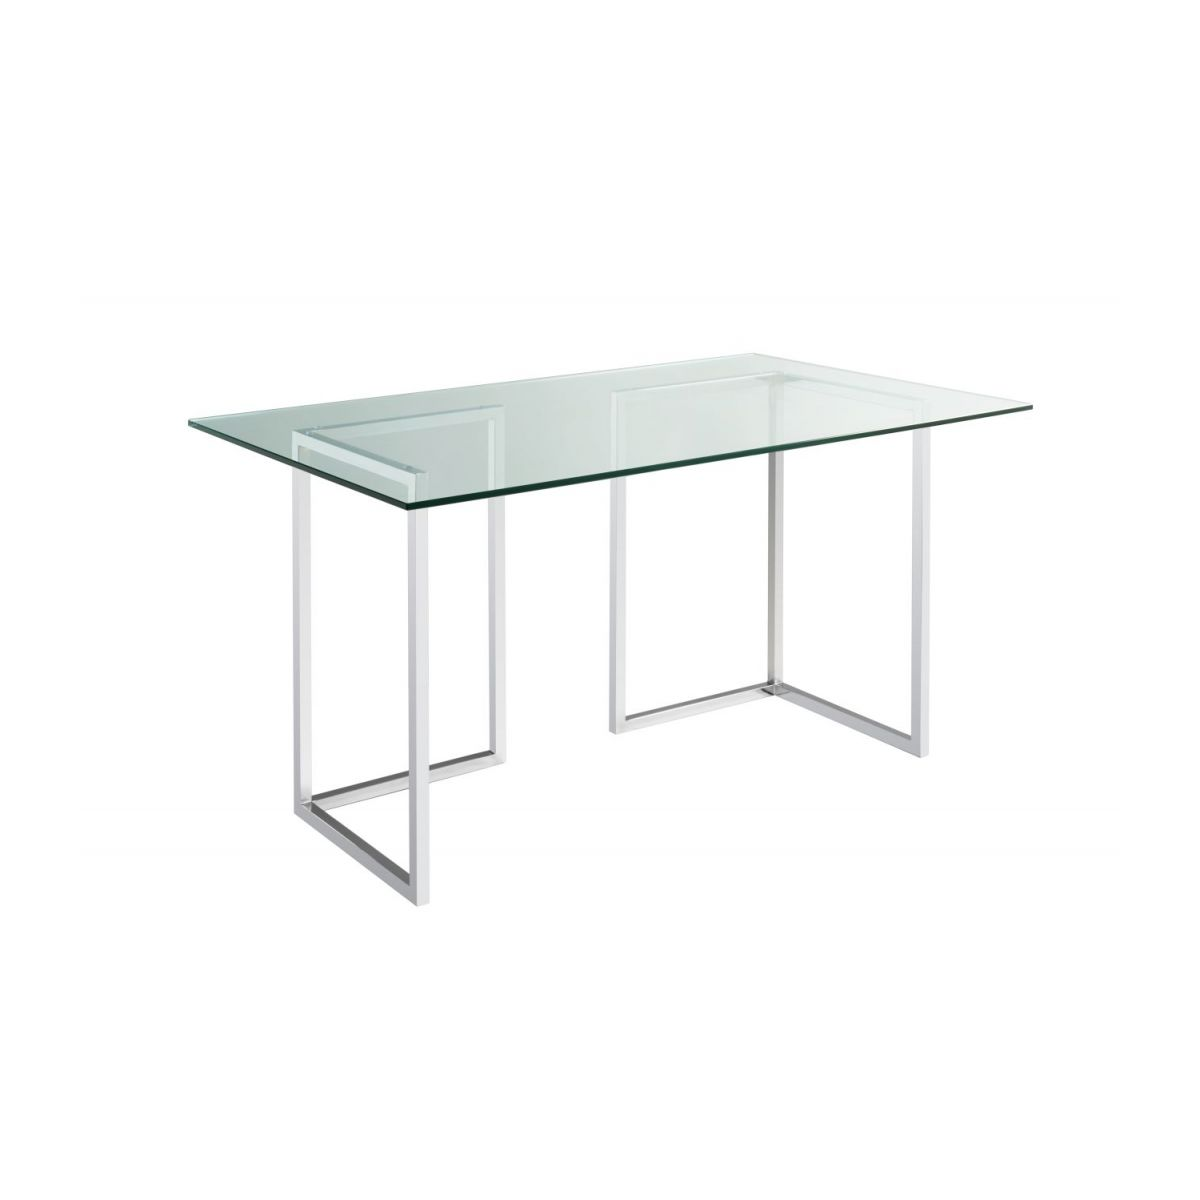 Plateau de table en verre 140x80 cm n°1